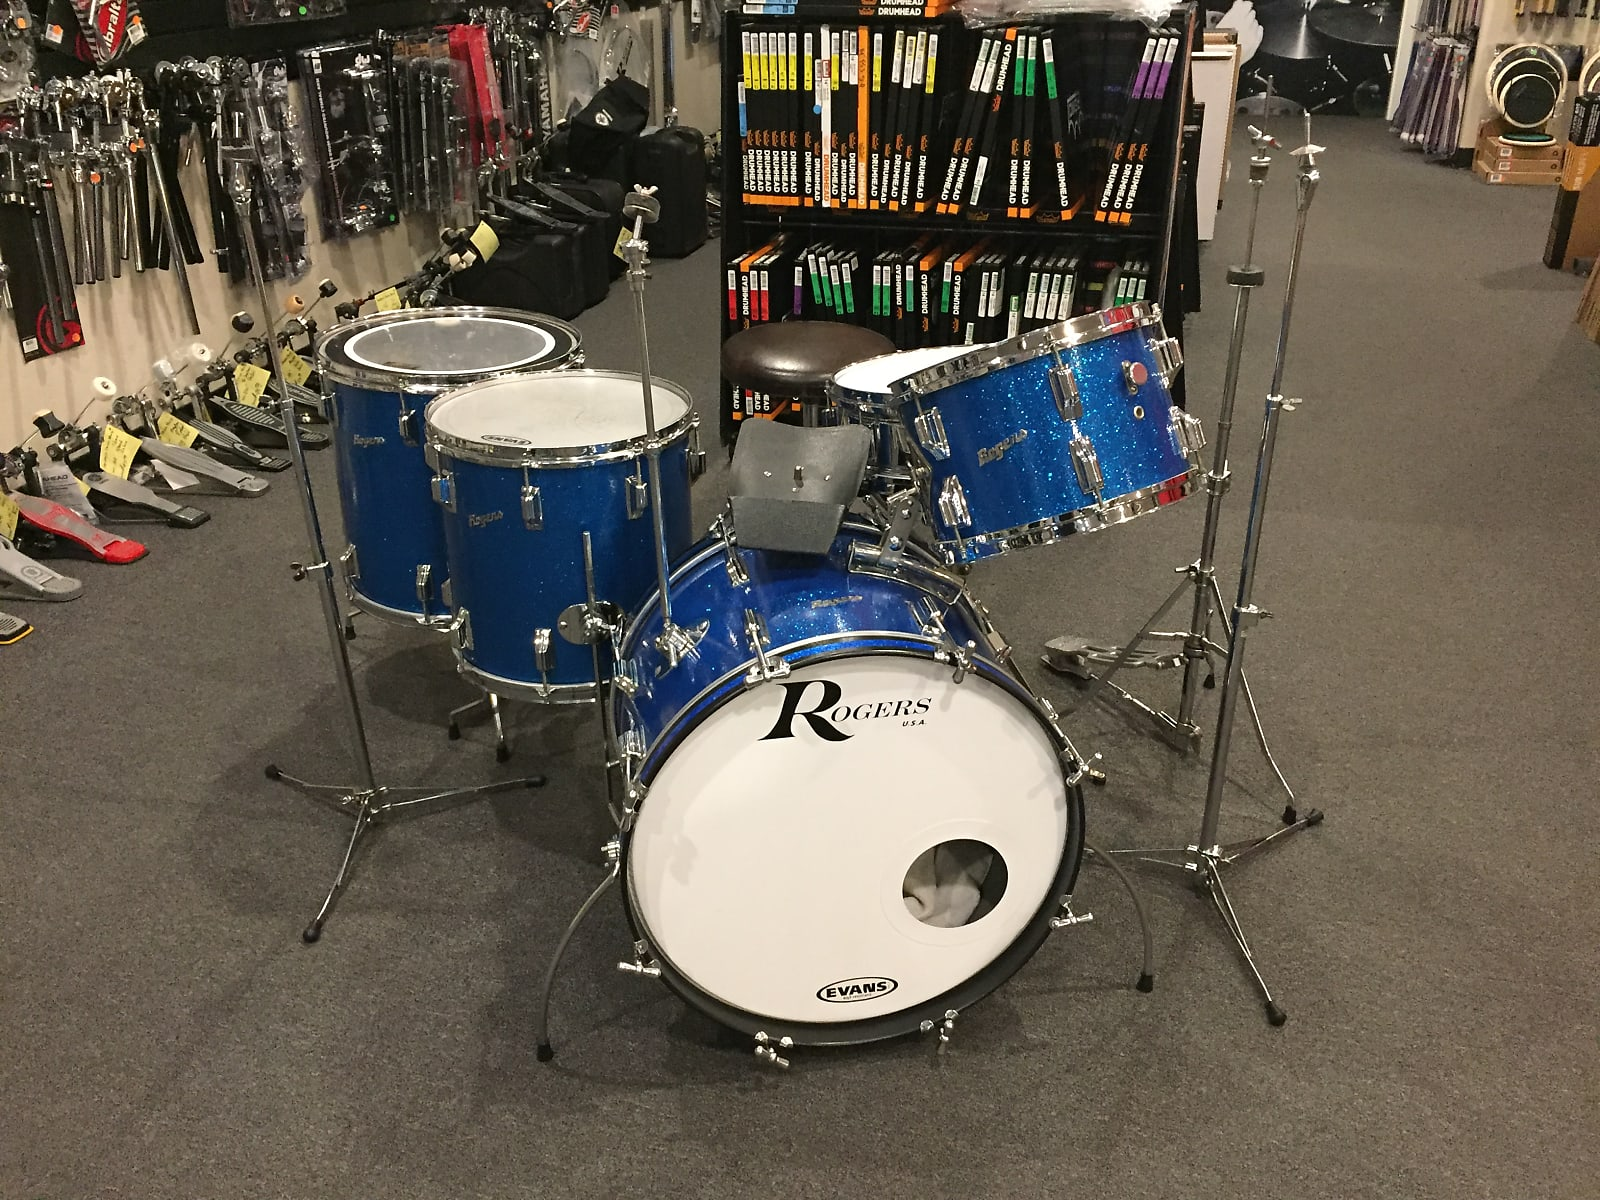 Rogers 5 Pc 60's Holiday Drum Set 12/14/16/20 with 5x14 Powertone Sn and Full Vintage Hardware Setup